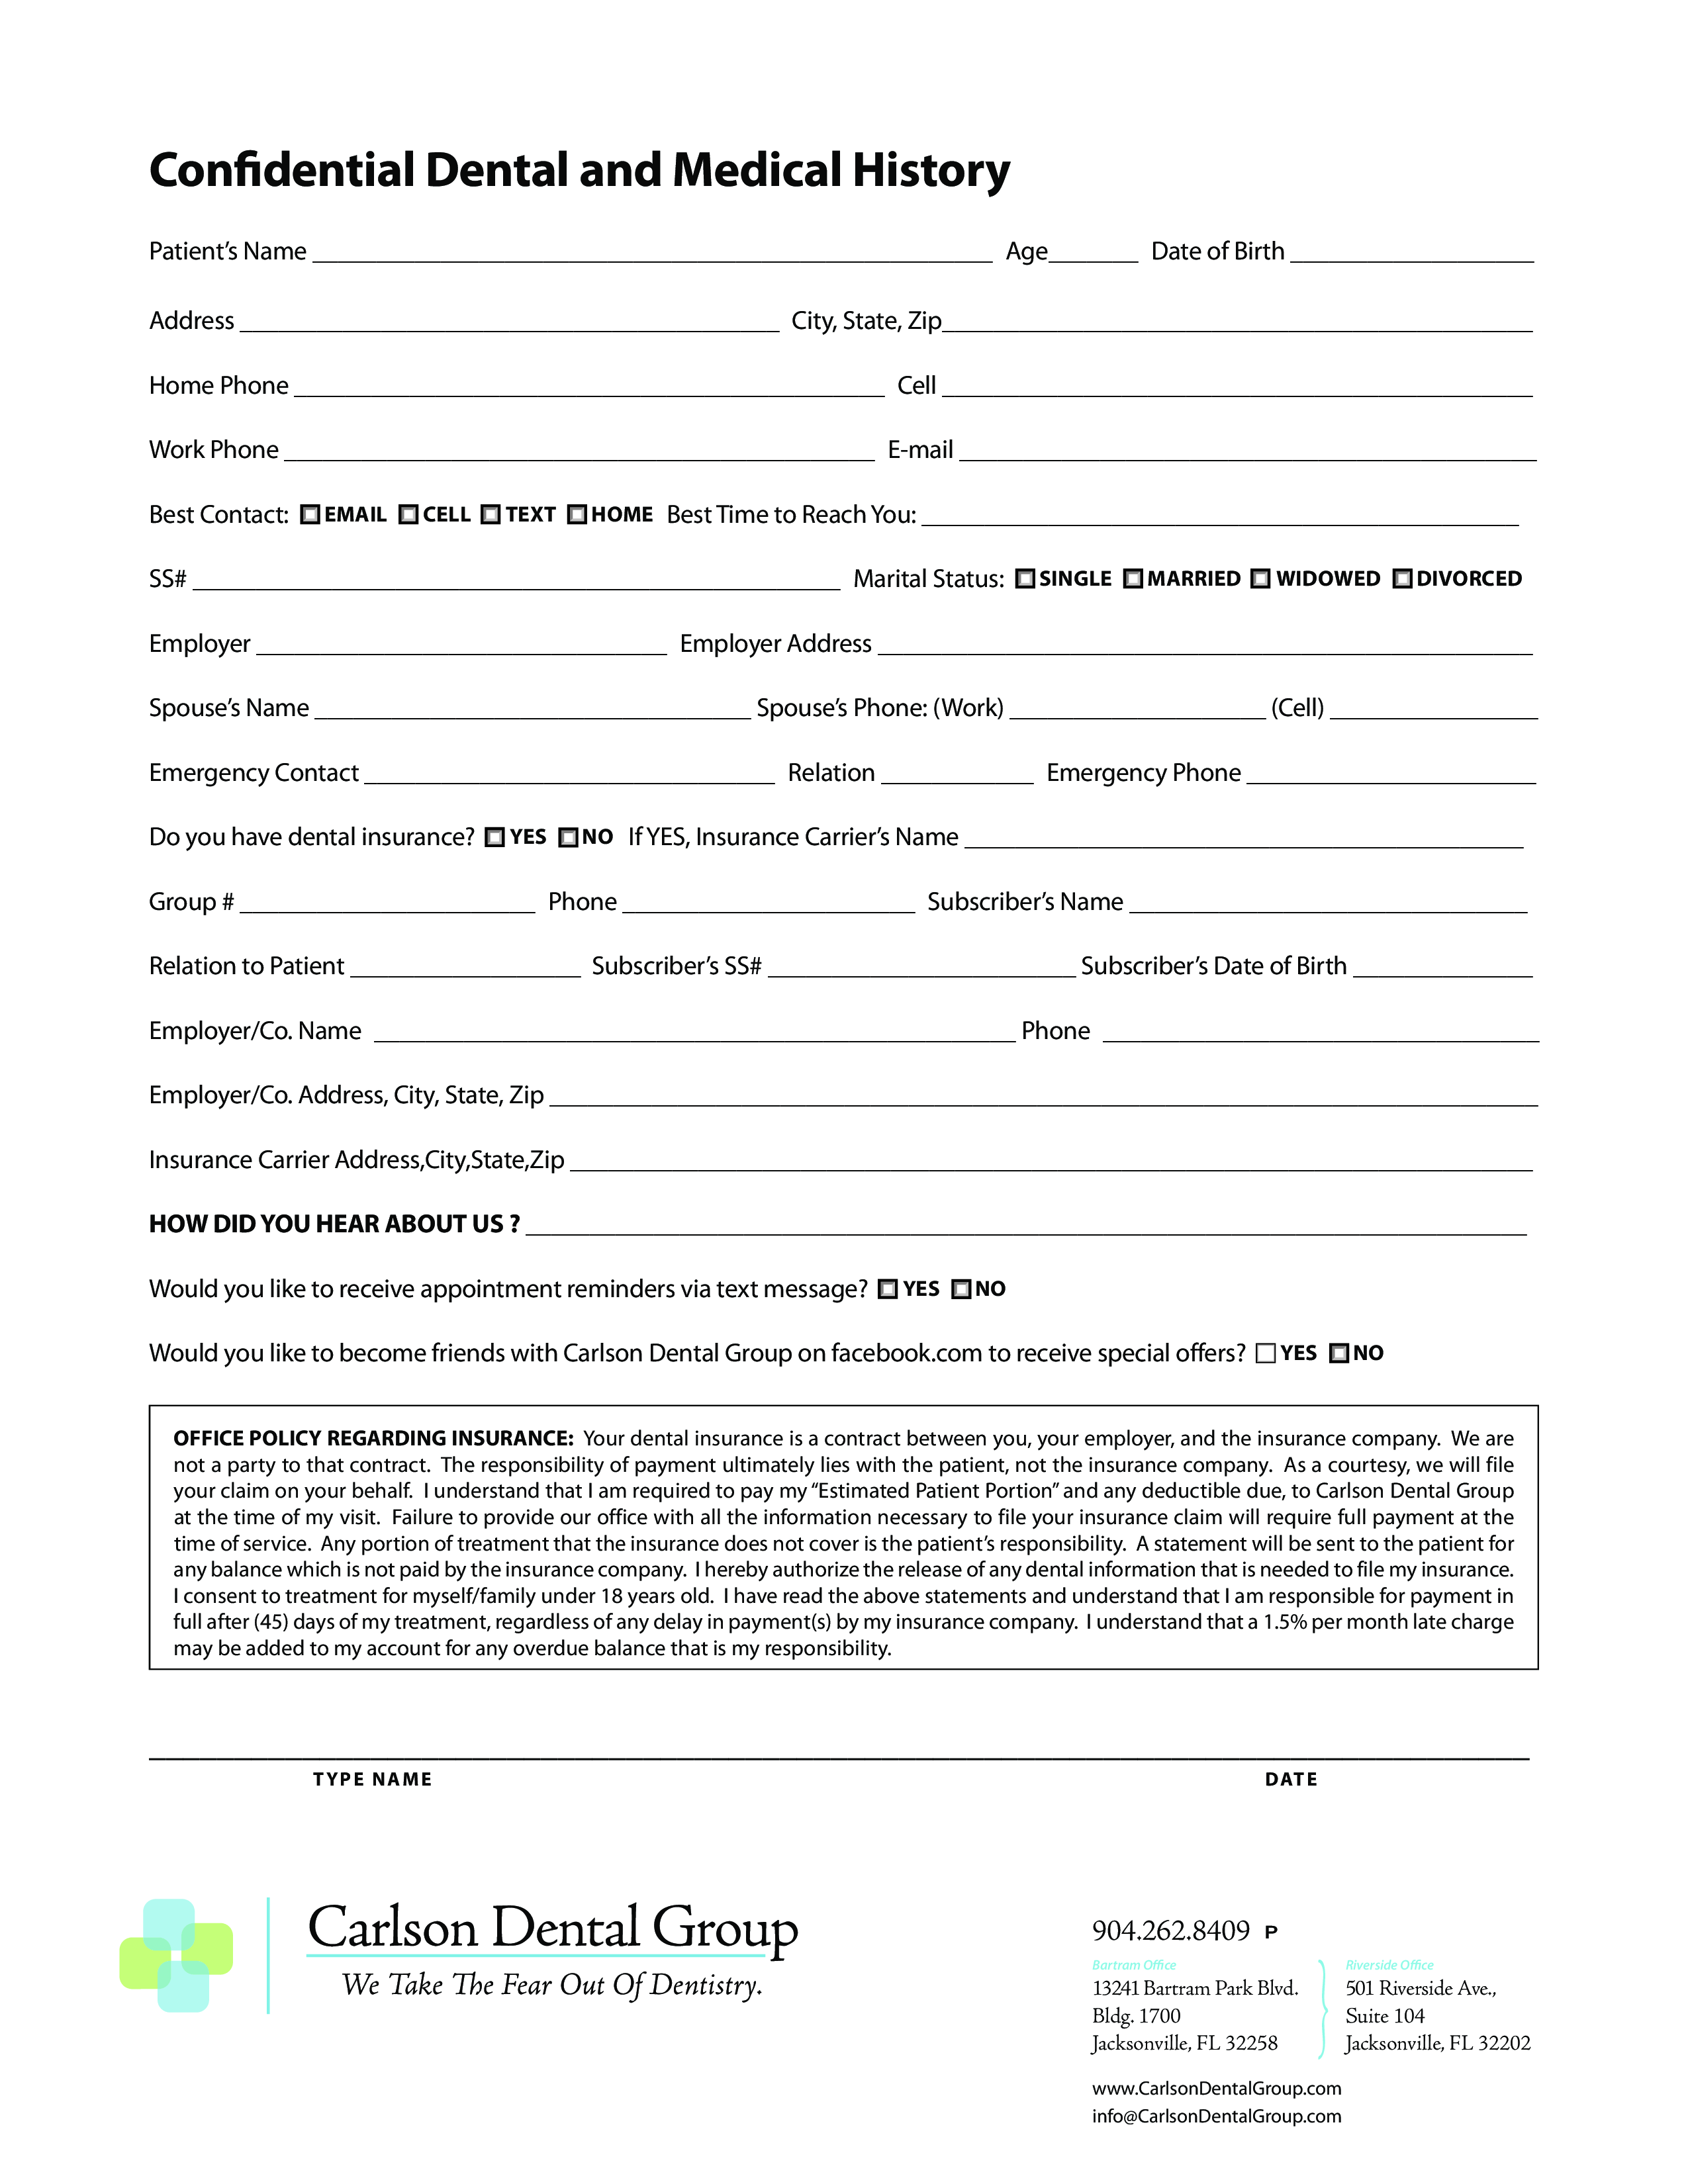 Dental Medical History Form Main Image Download Template